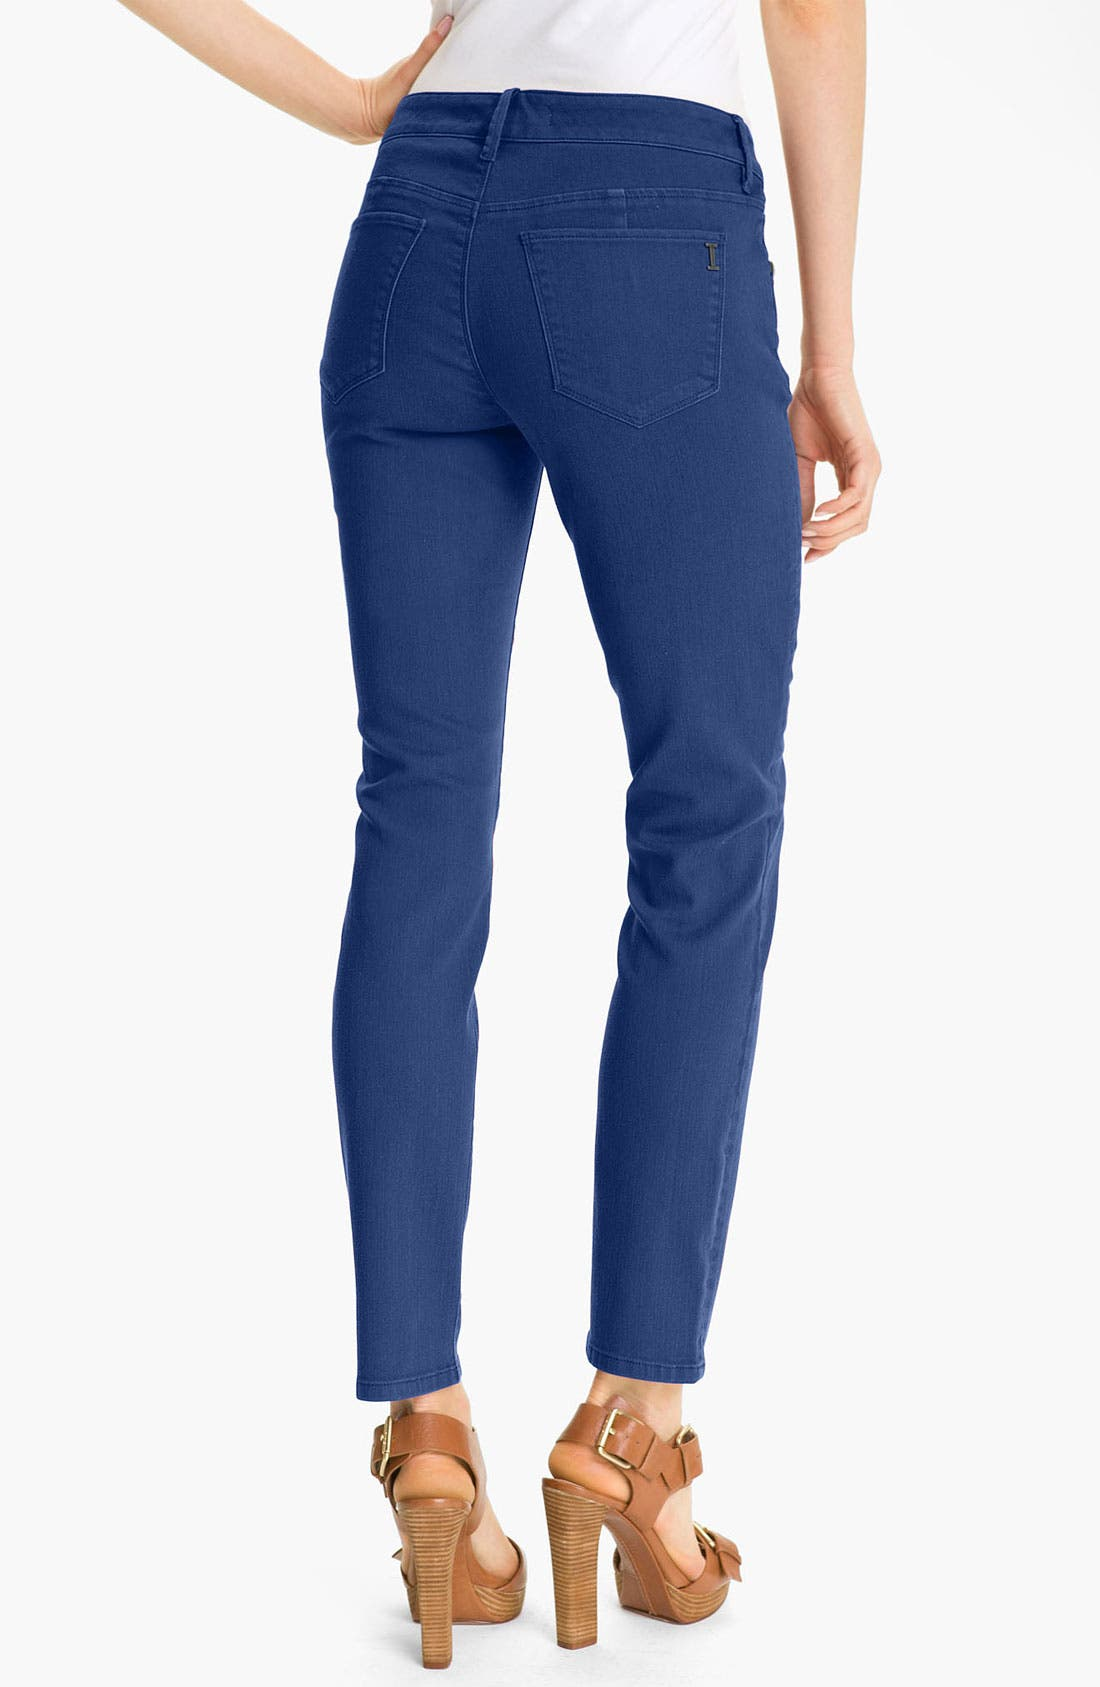 Alternate Image 2  - Isaac Mizrahi Jeans 'Samantha' Colored Denim Skinny Jeans